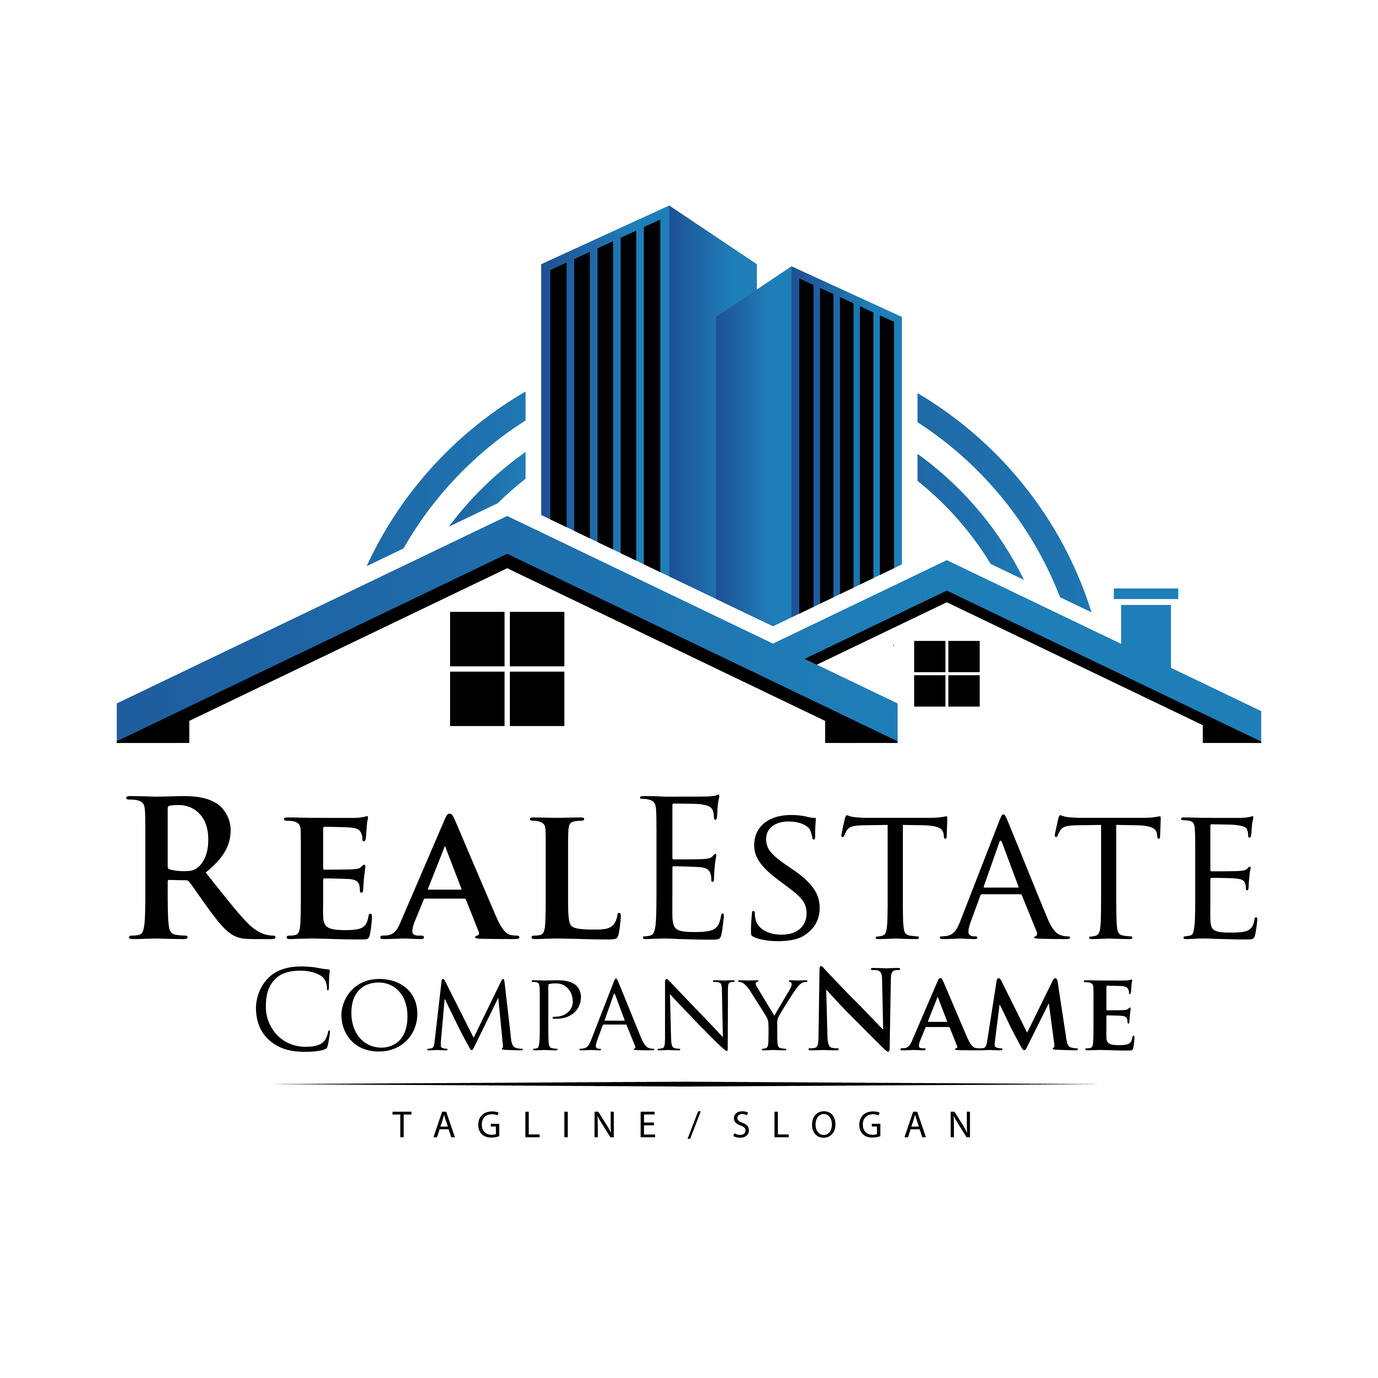 5 professional fonts for real estate logo design online logo